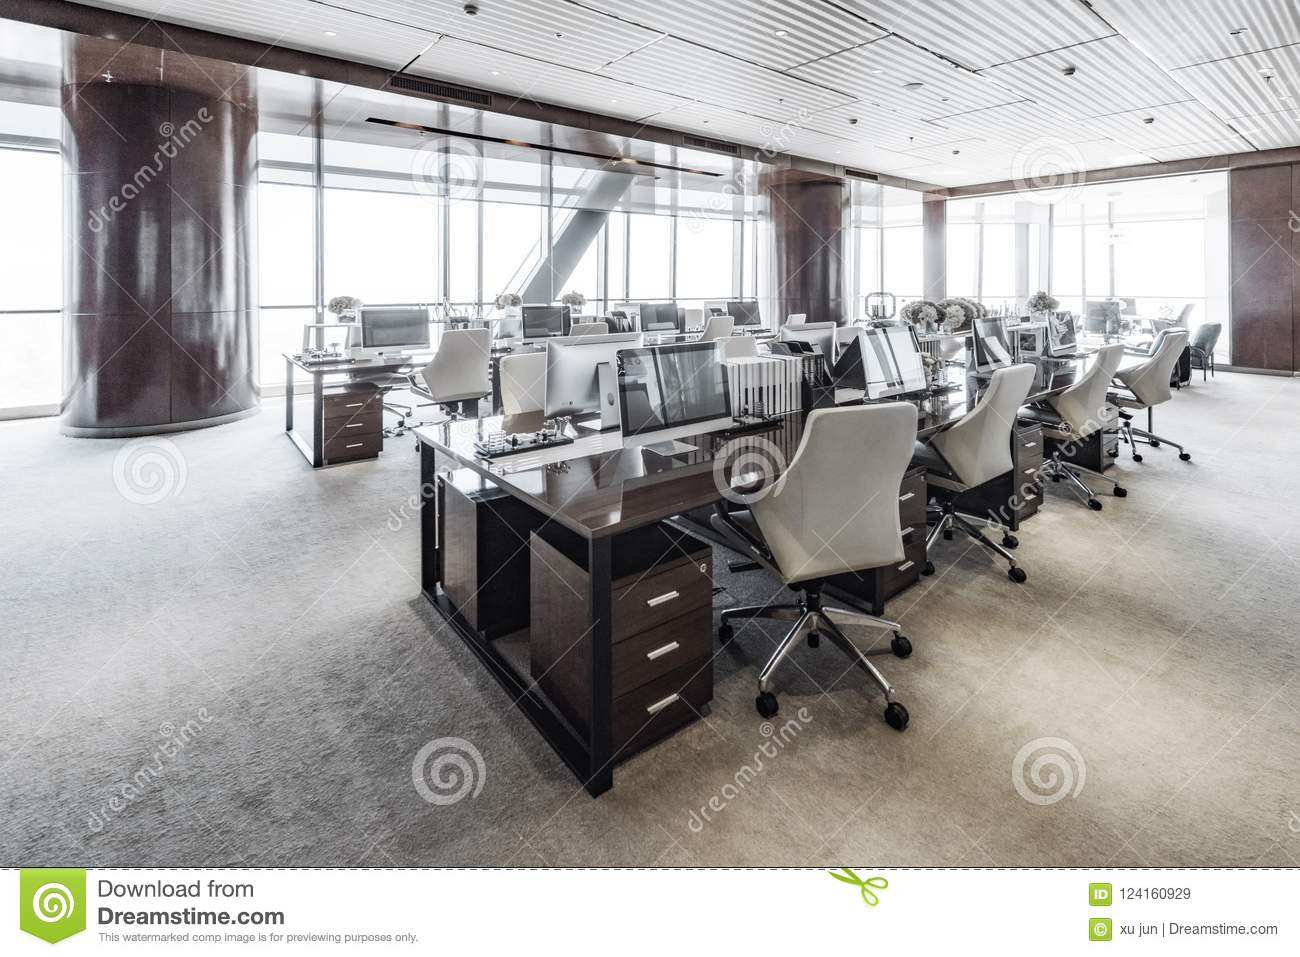 Modern business offices stock image. Image of computer ...